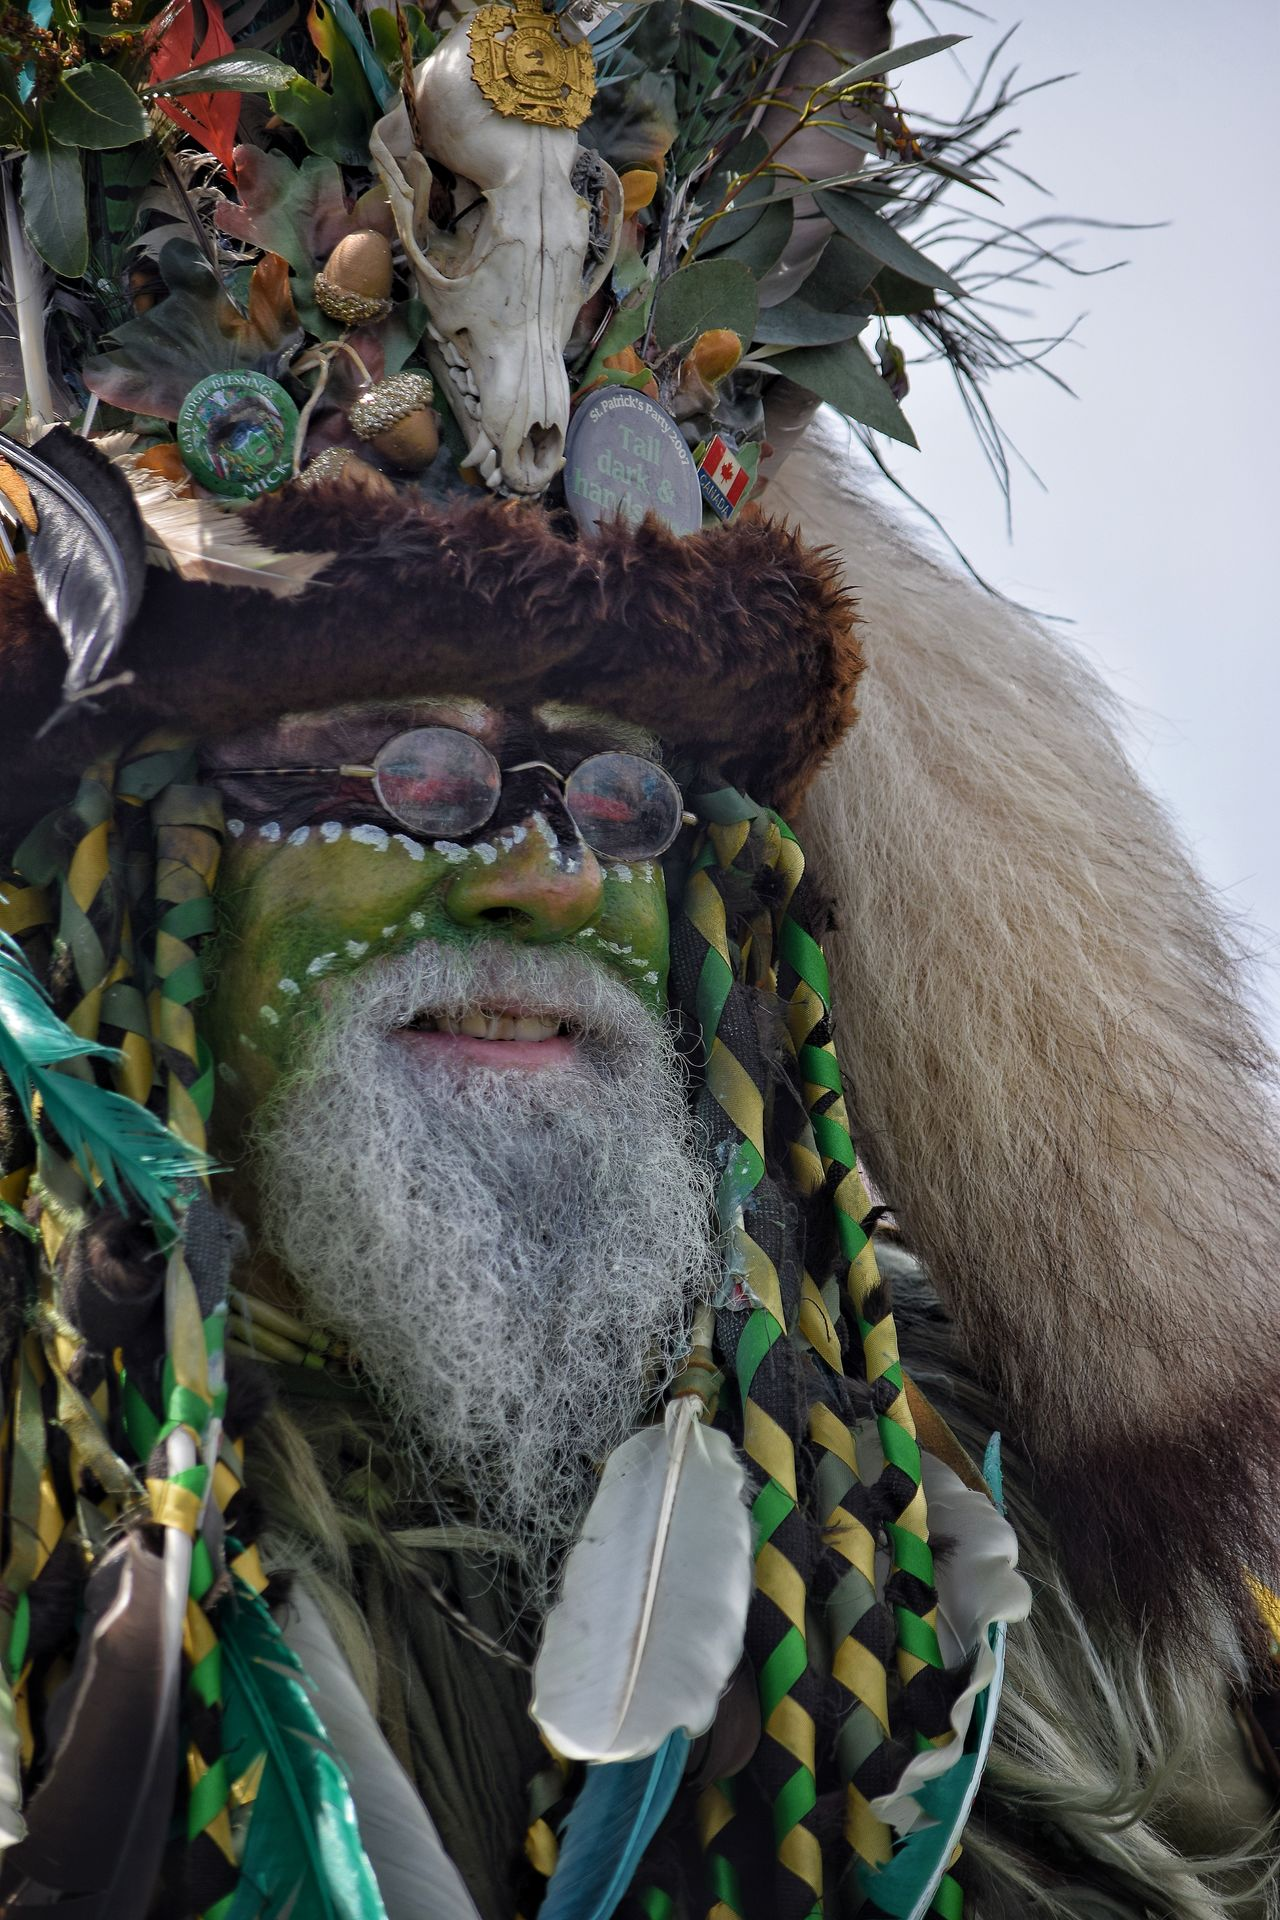 Jack In The Green Jack In The Green Festival Hastings East Sussex Parade Celebration Man Green Green Man Costume Close-up Day Uk Bearded Man Beard Life Nature Green Face May Festival Face Make Up May Day May Day 2017 Pagan Live For The Story The Portraitist - 2017 EyeEm Awards